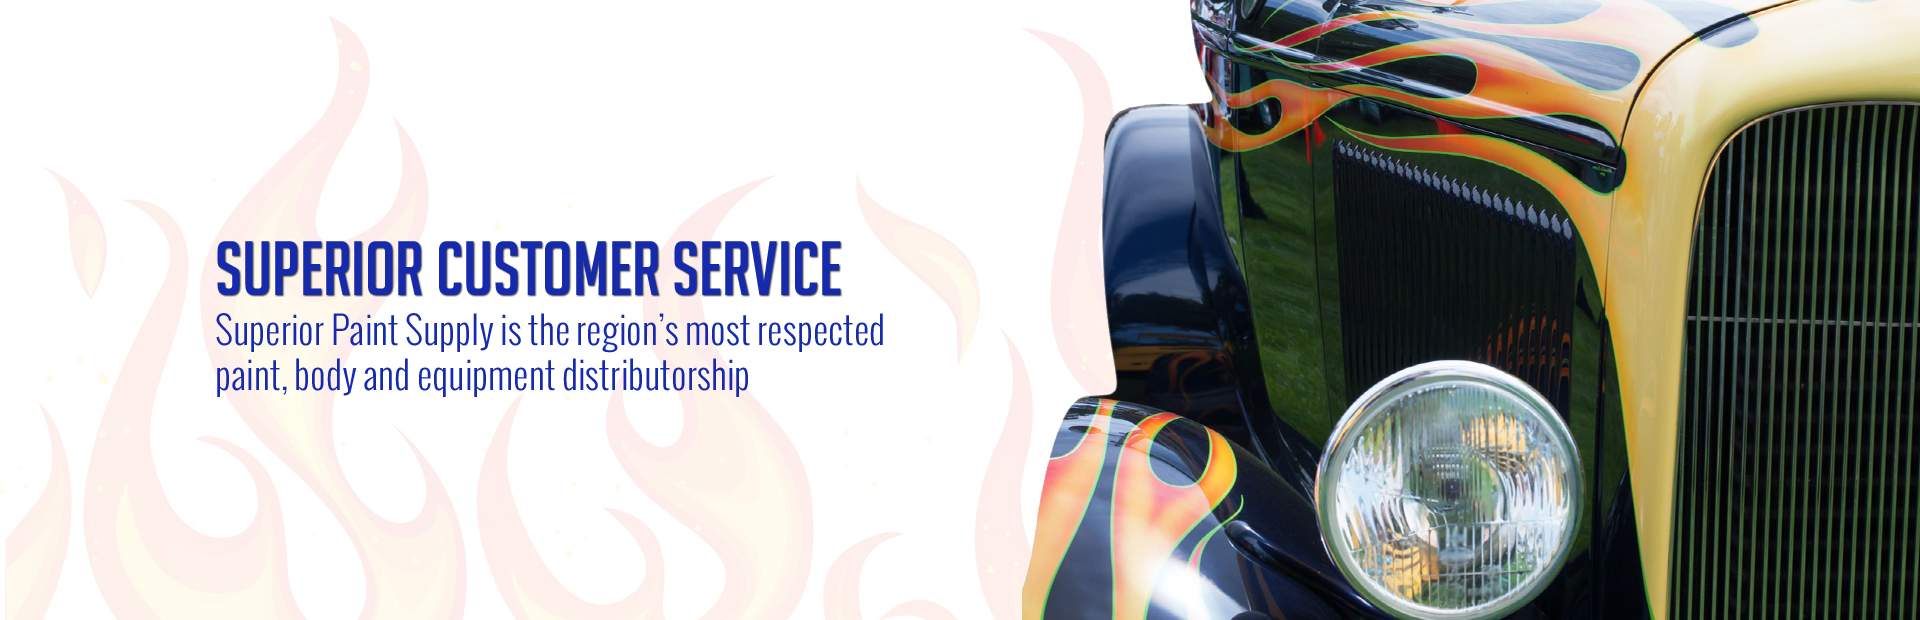 superior paint supply salt lake city auto paint and body